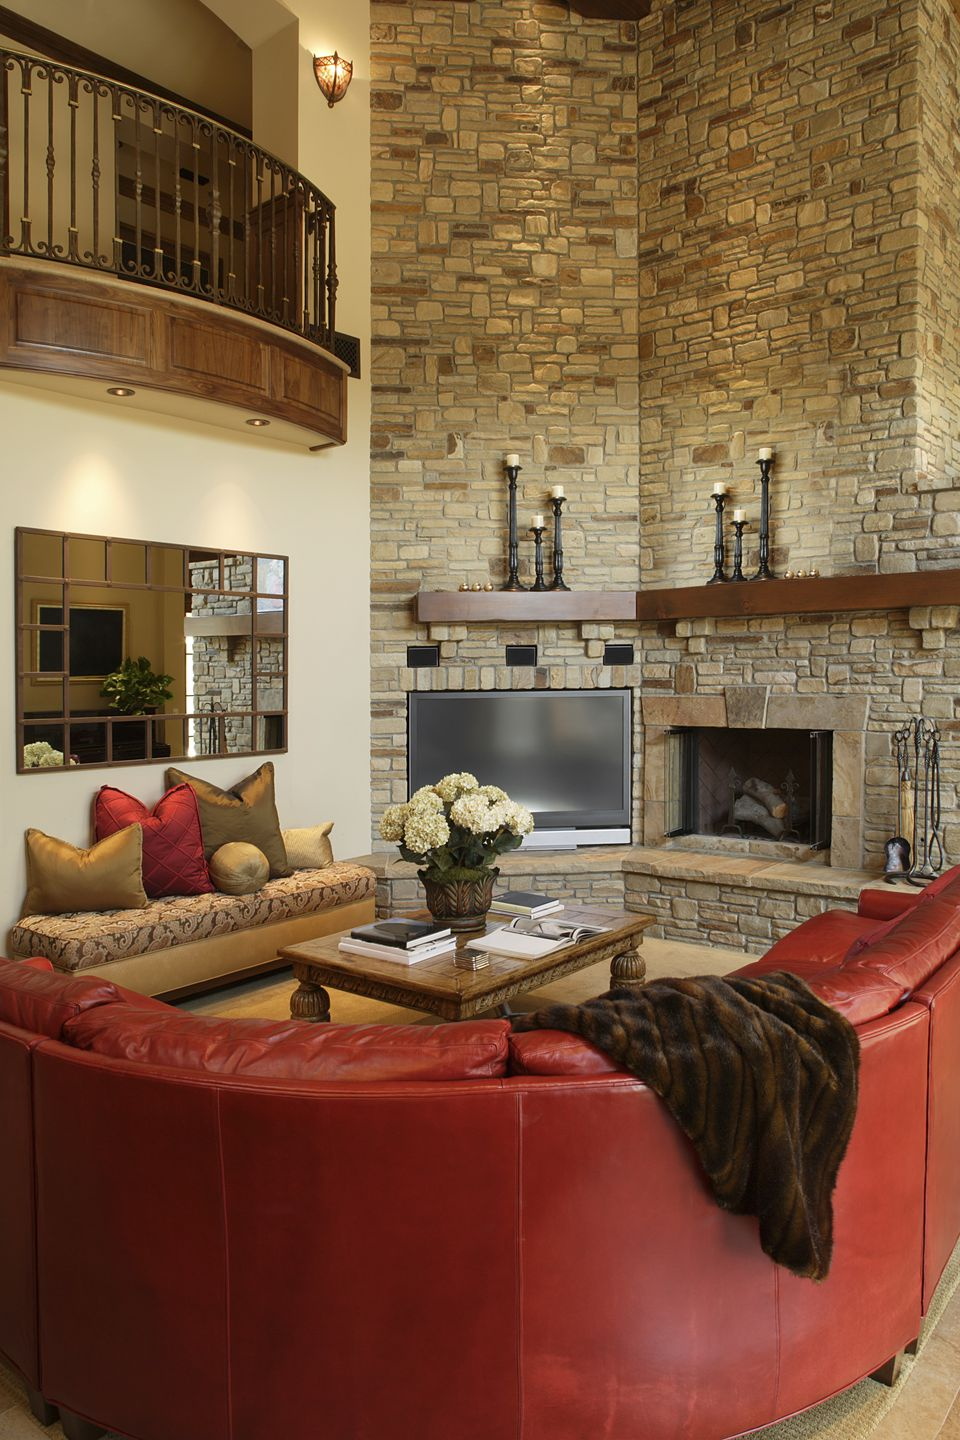 Red Leather Sofa in Living Room with Stone Fireplace